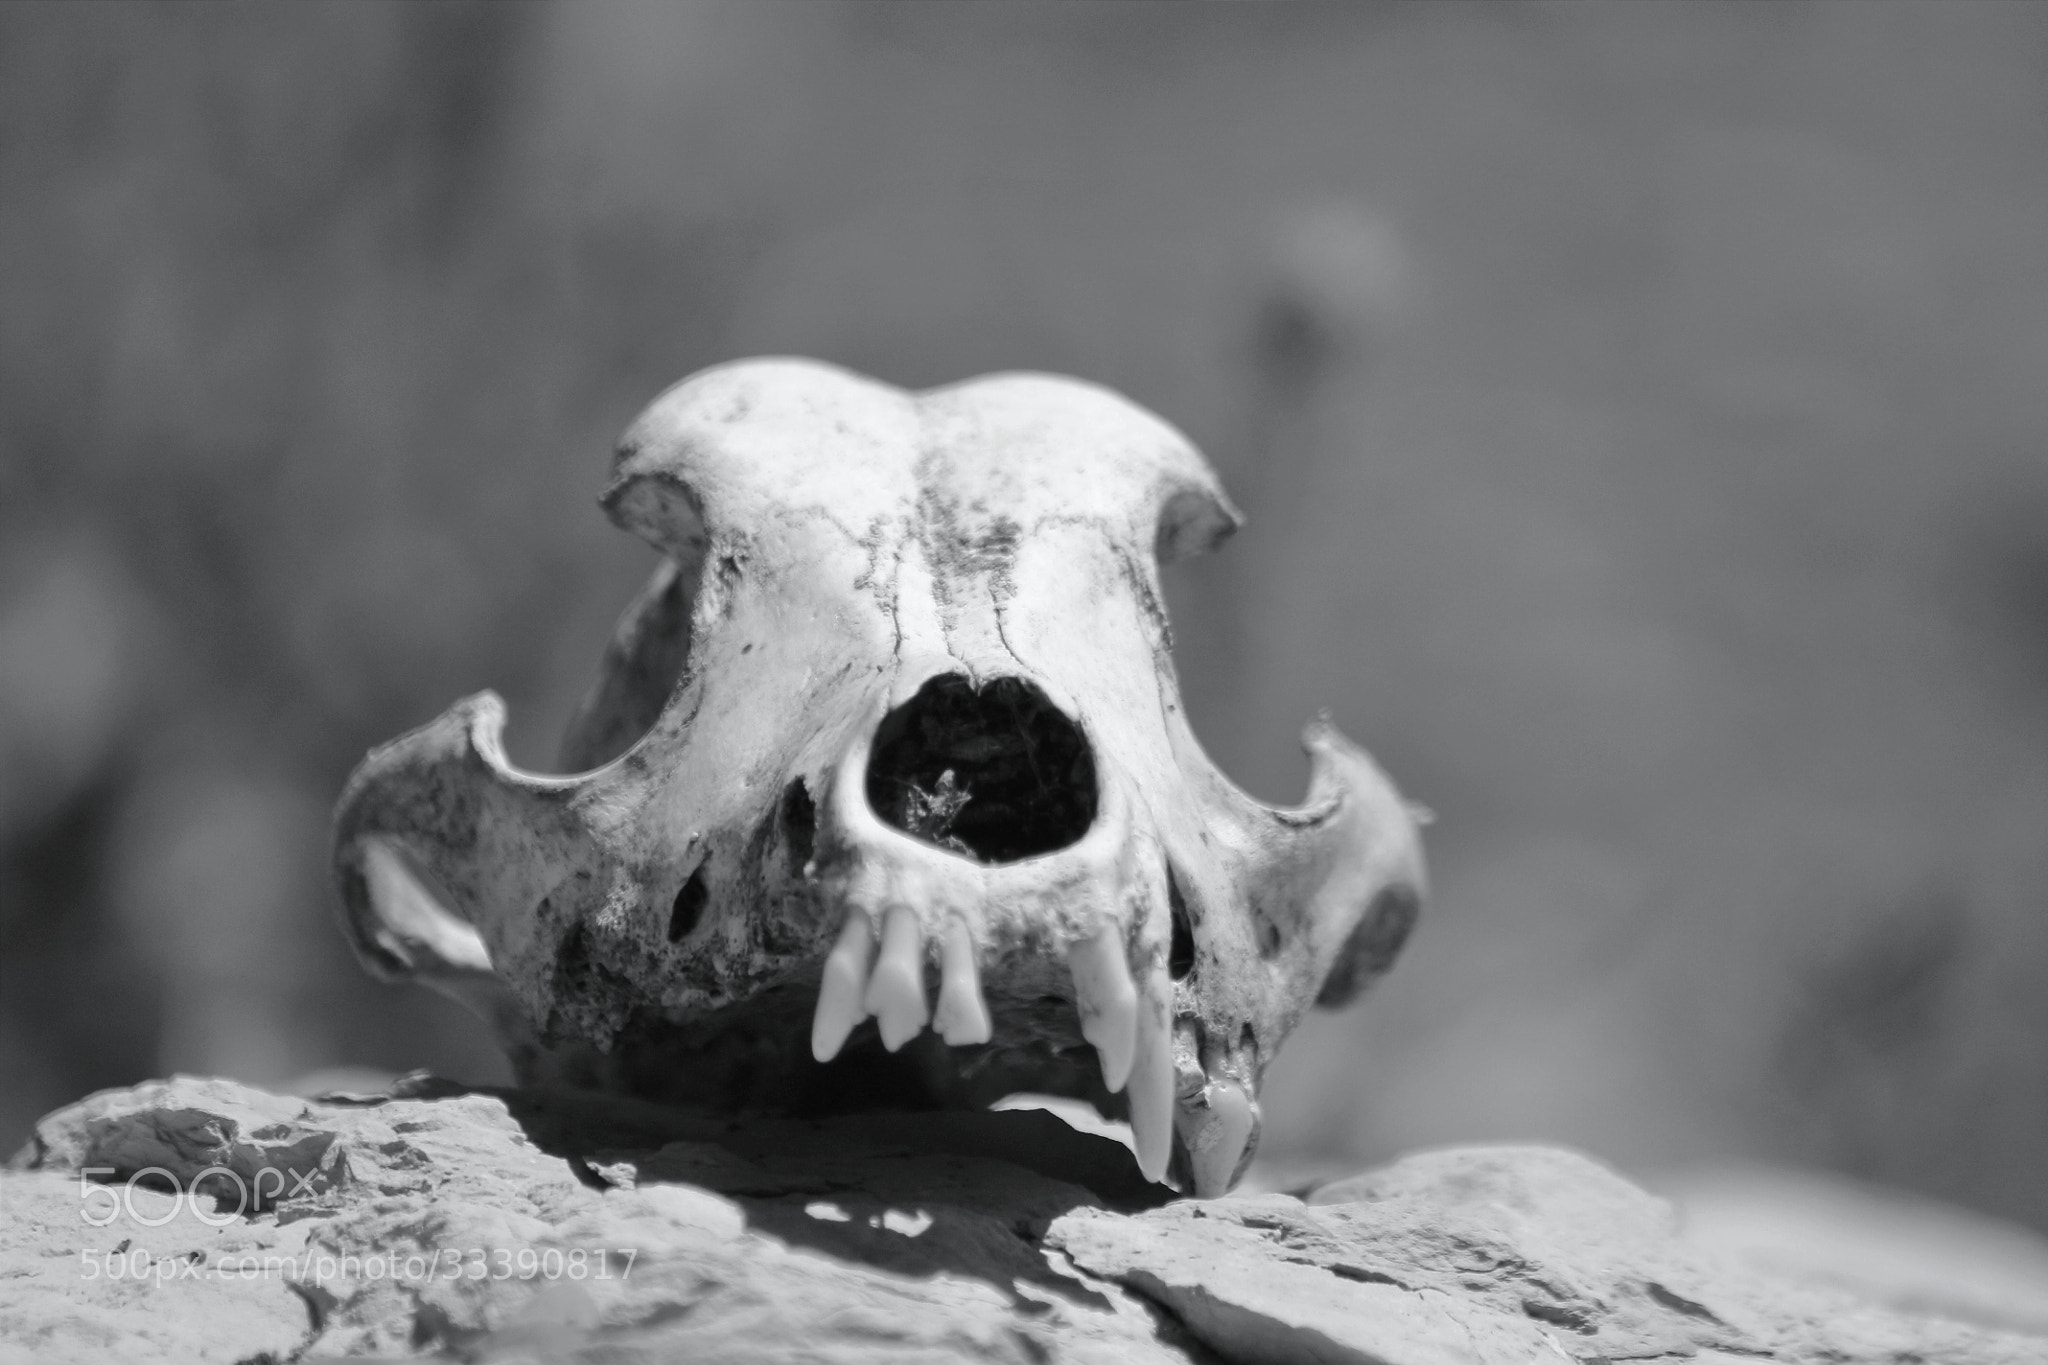 Photograph Skull of death by richard cauchy on 500px